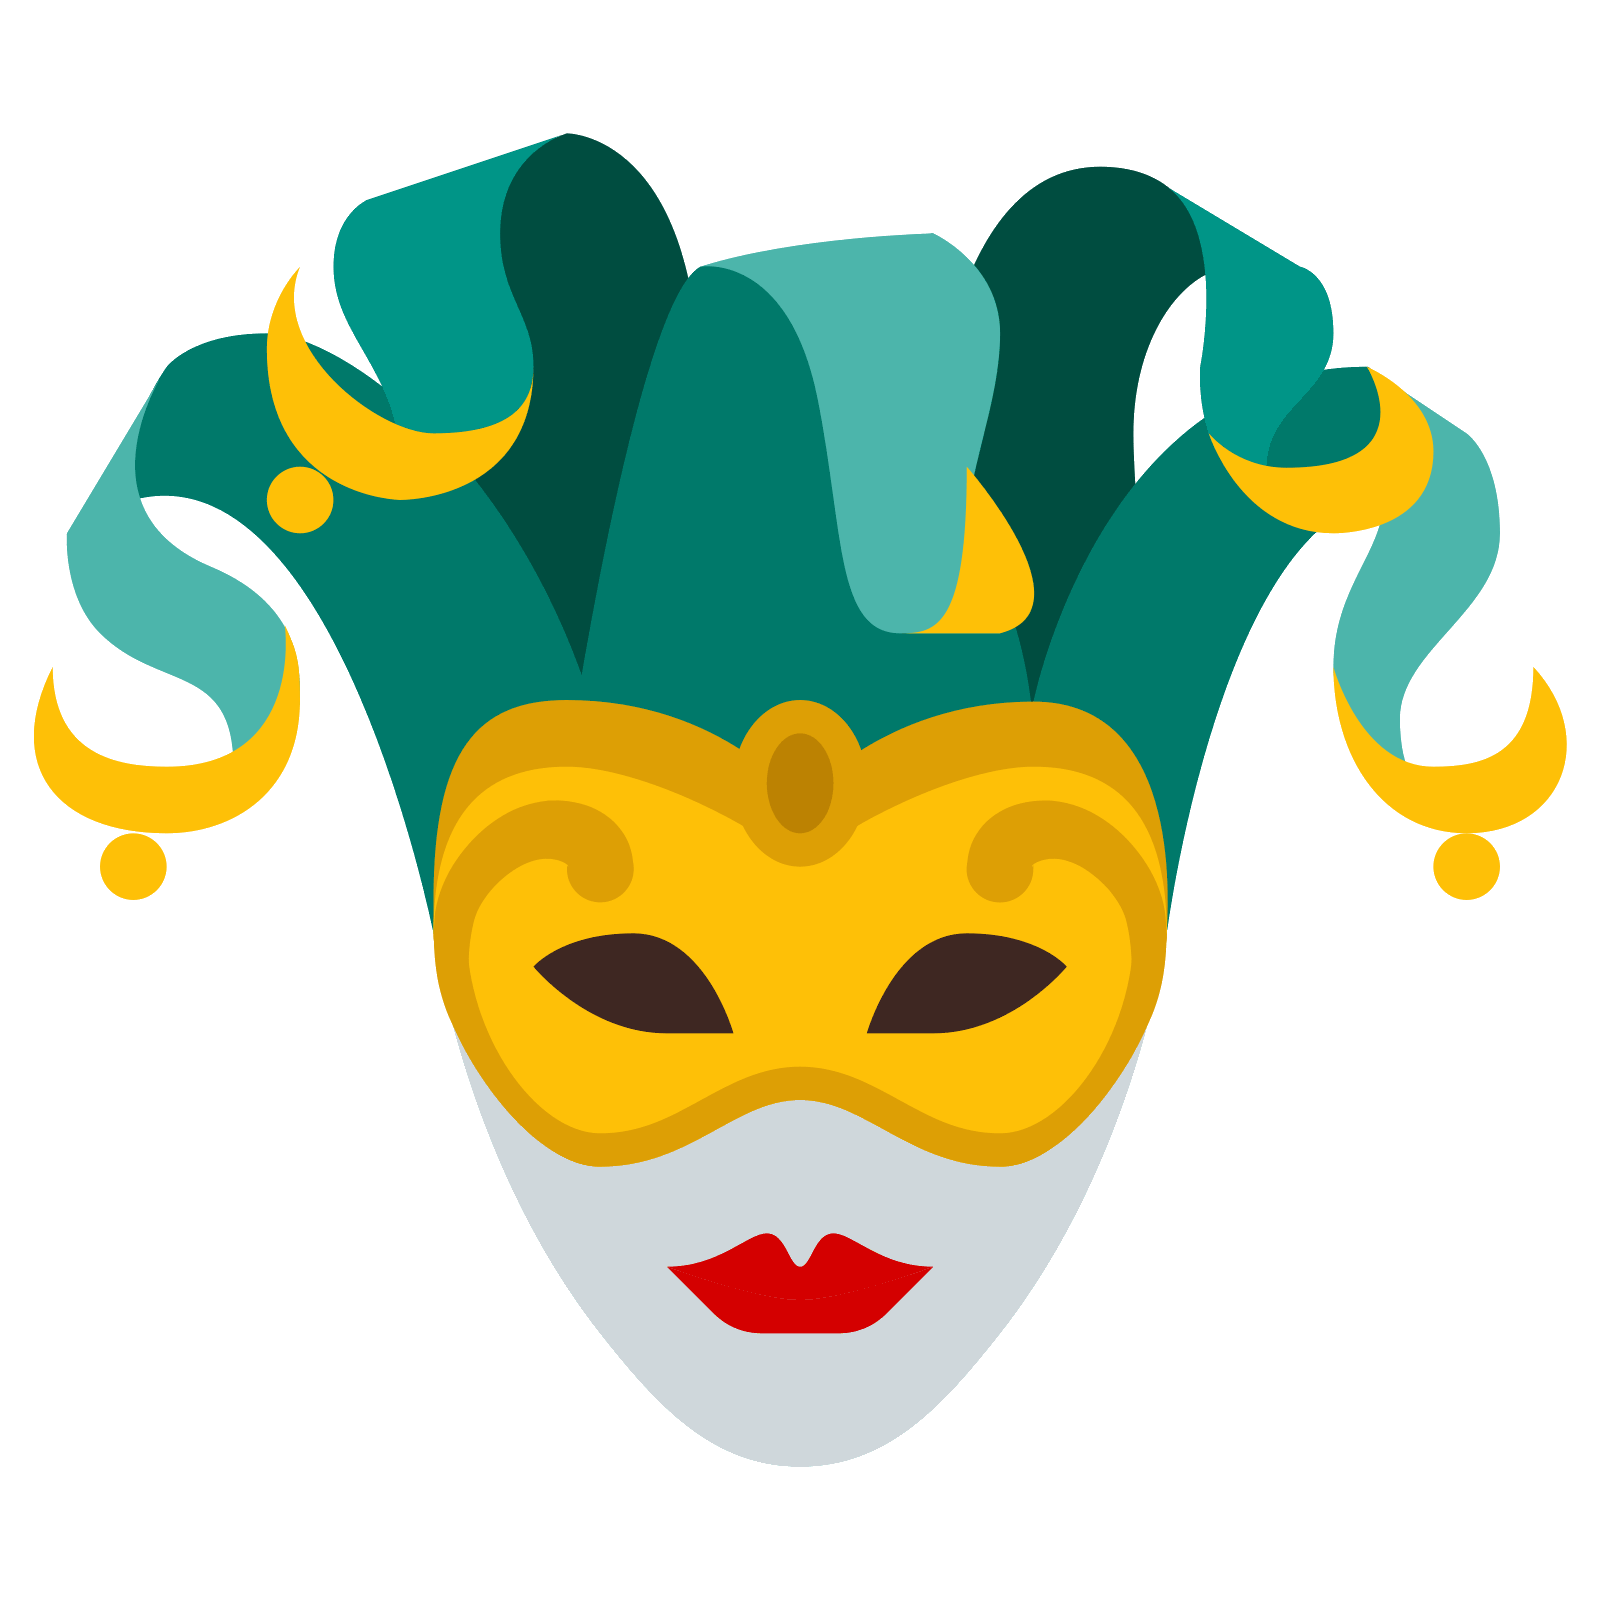 Mask clipart musical theatre. Venetian icon free download